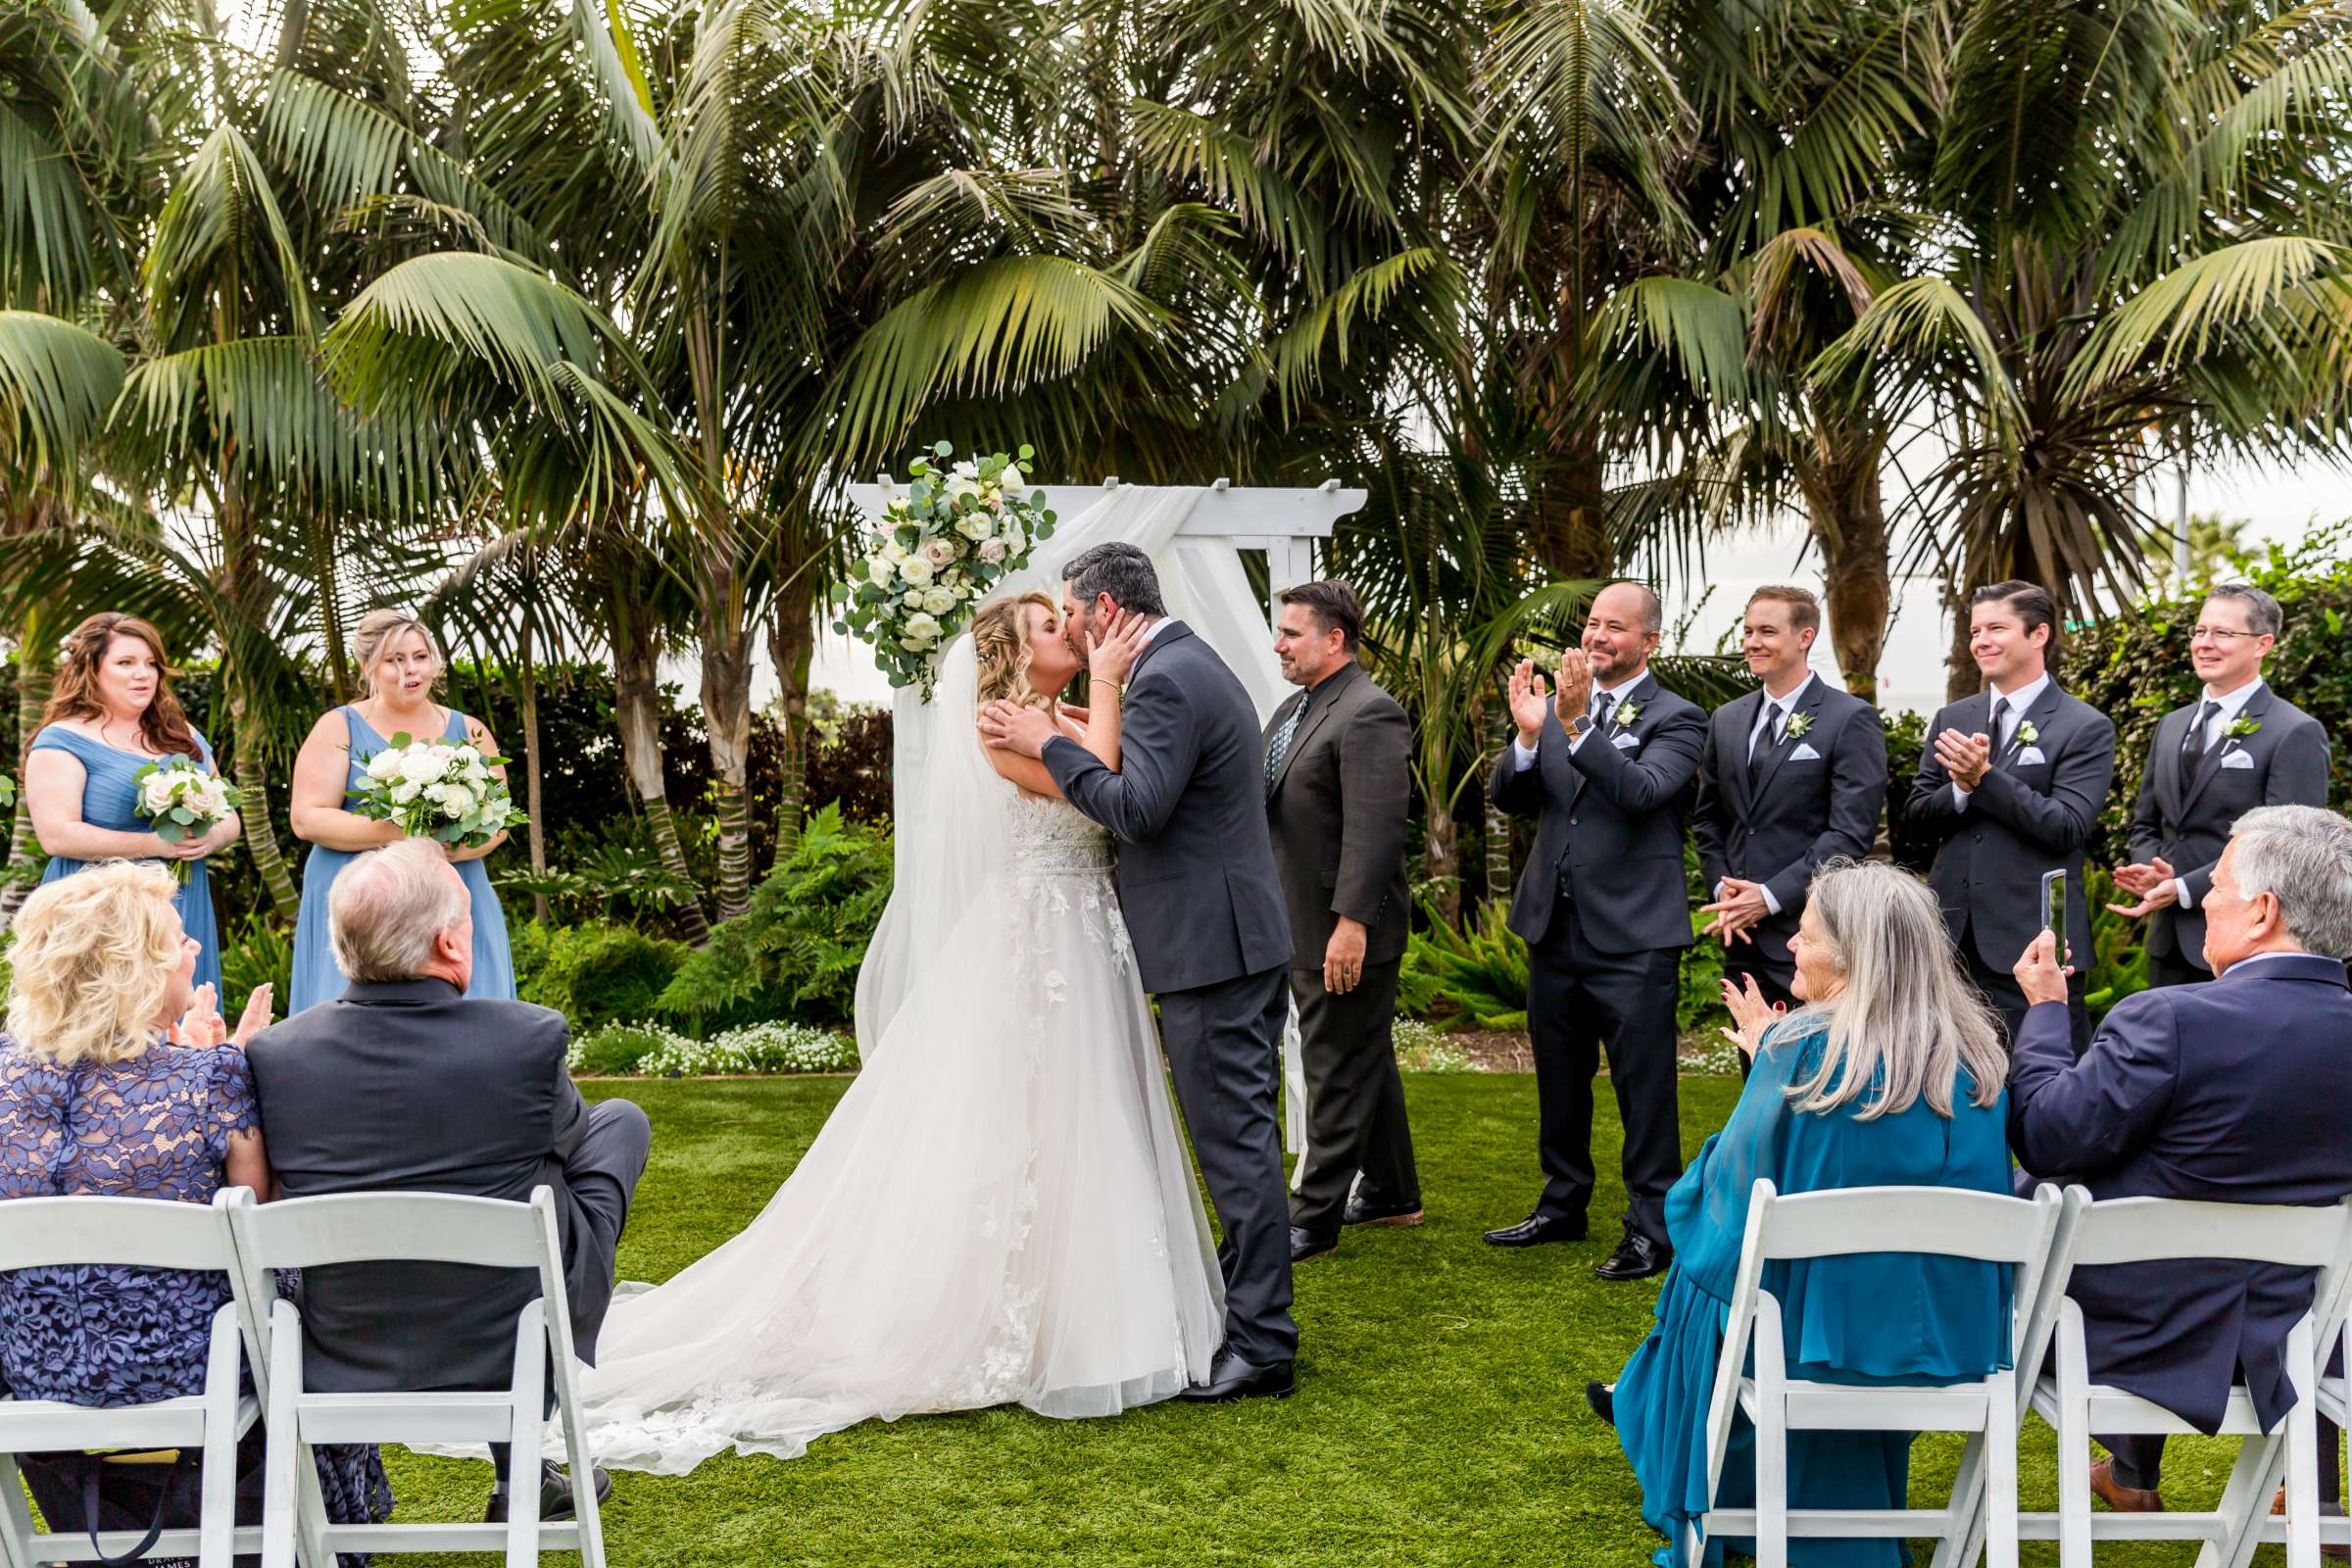 Cape Rey Carlsbad, A Hilton Resort Wedding, Michelle and Justin Wedding Photo #67 by True Photography